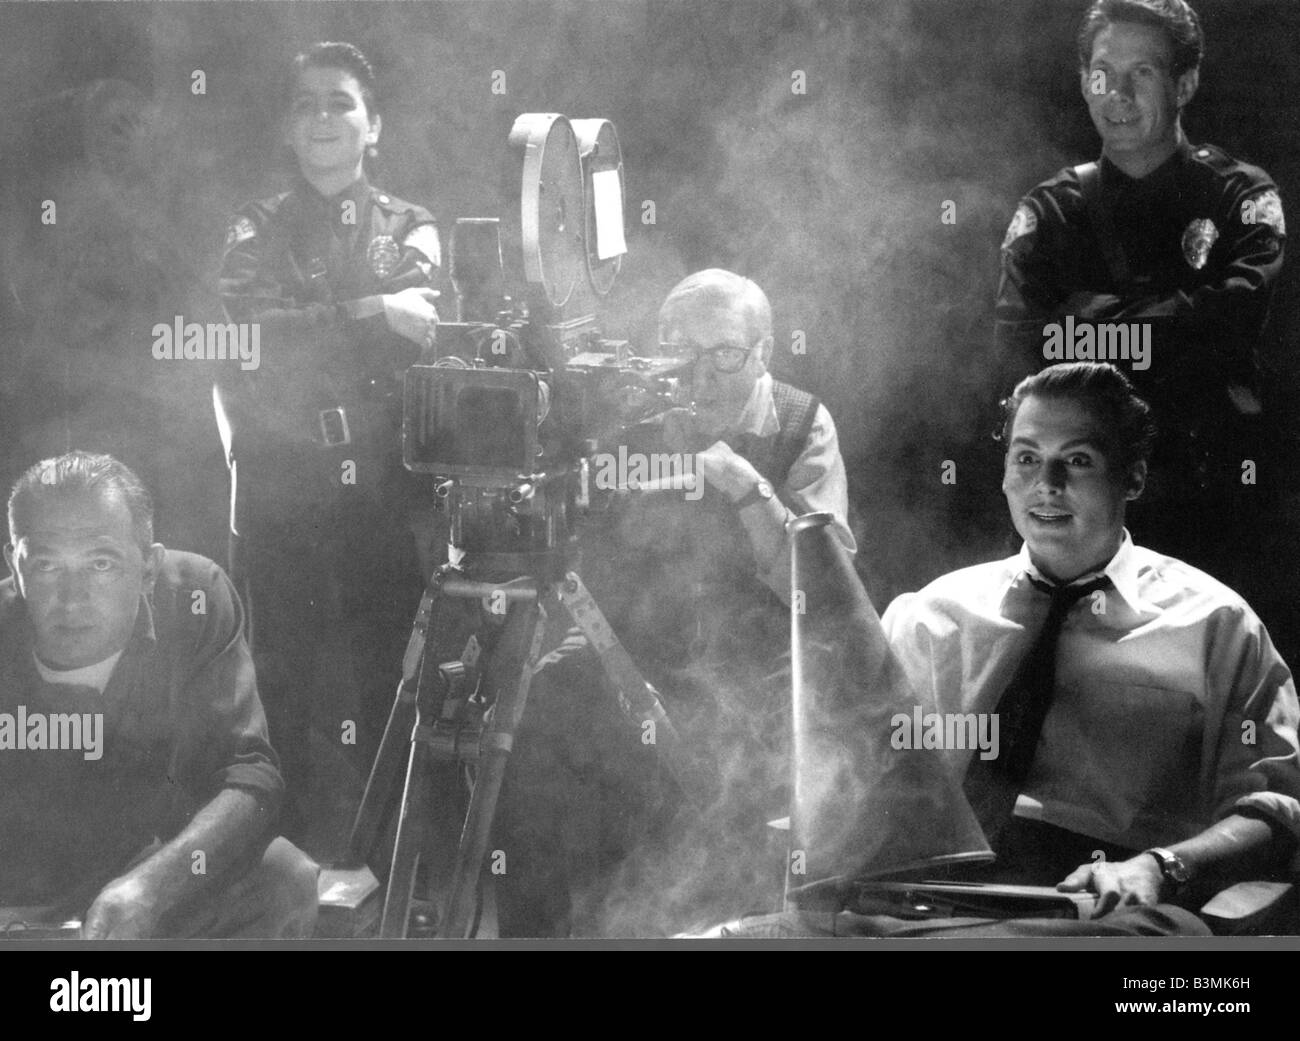 ED WOOD  1994 Buena Vista film with Johnny Depp at right - Stock Image